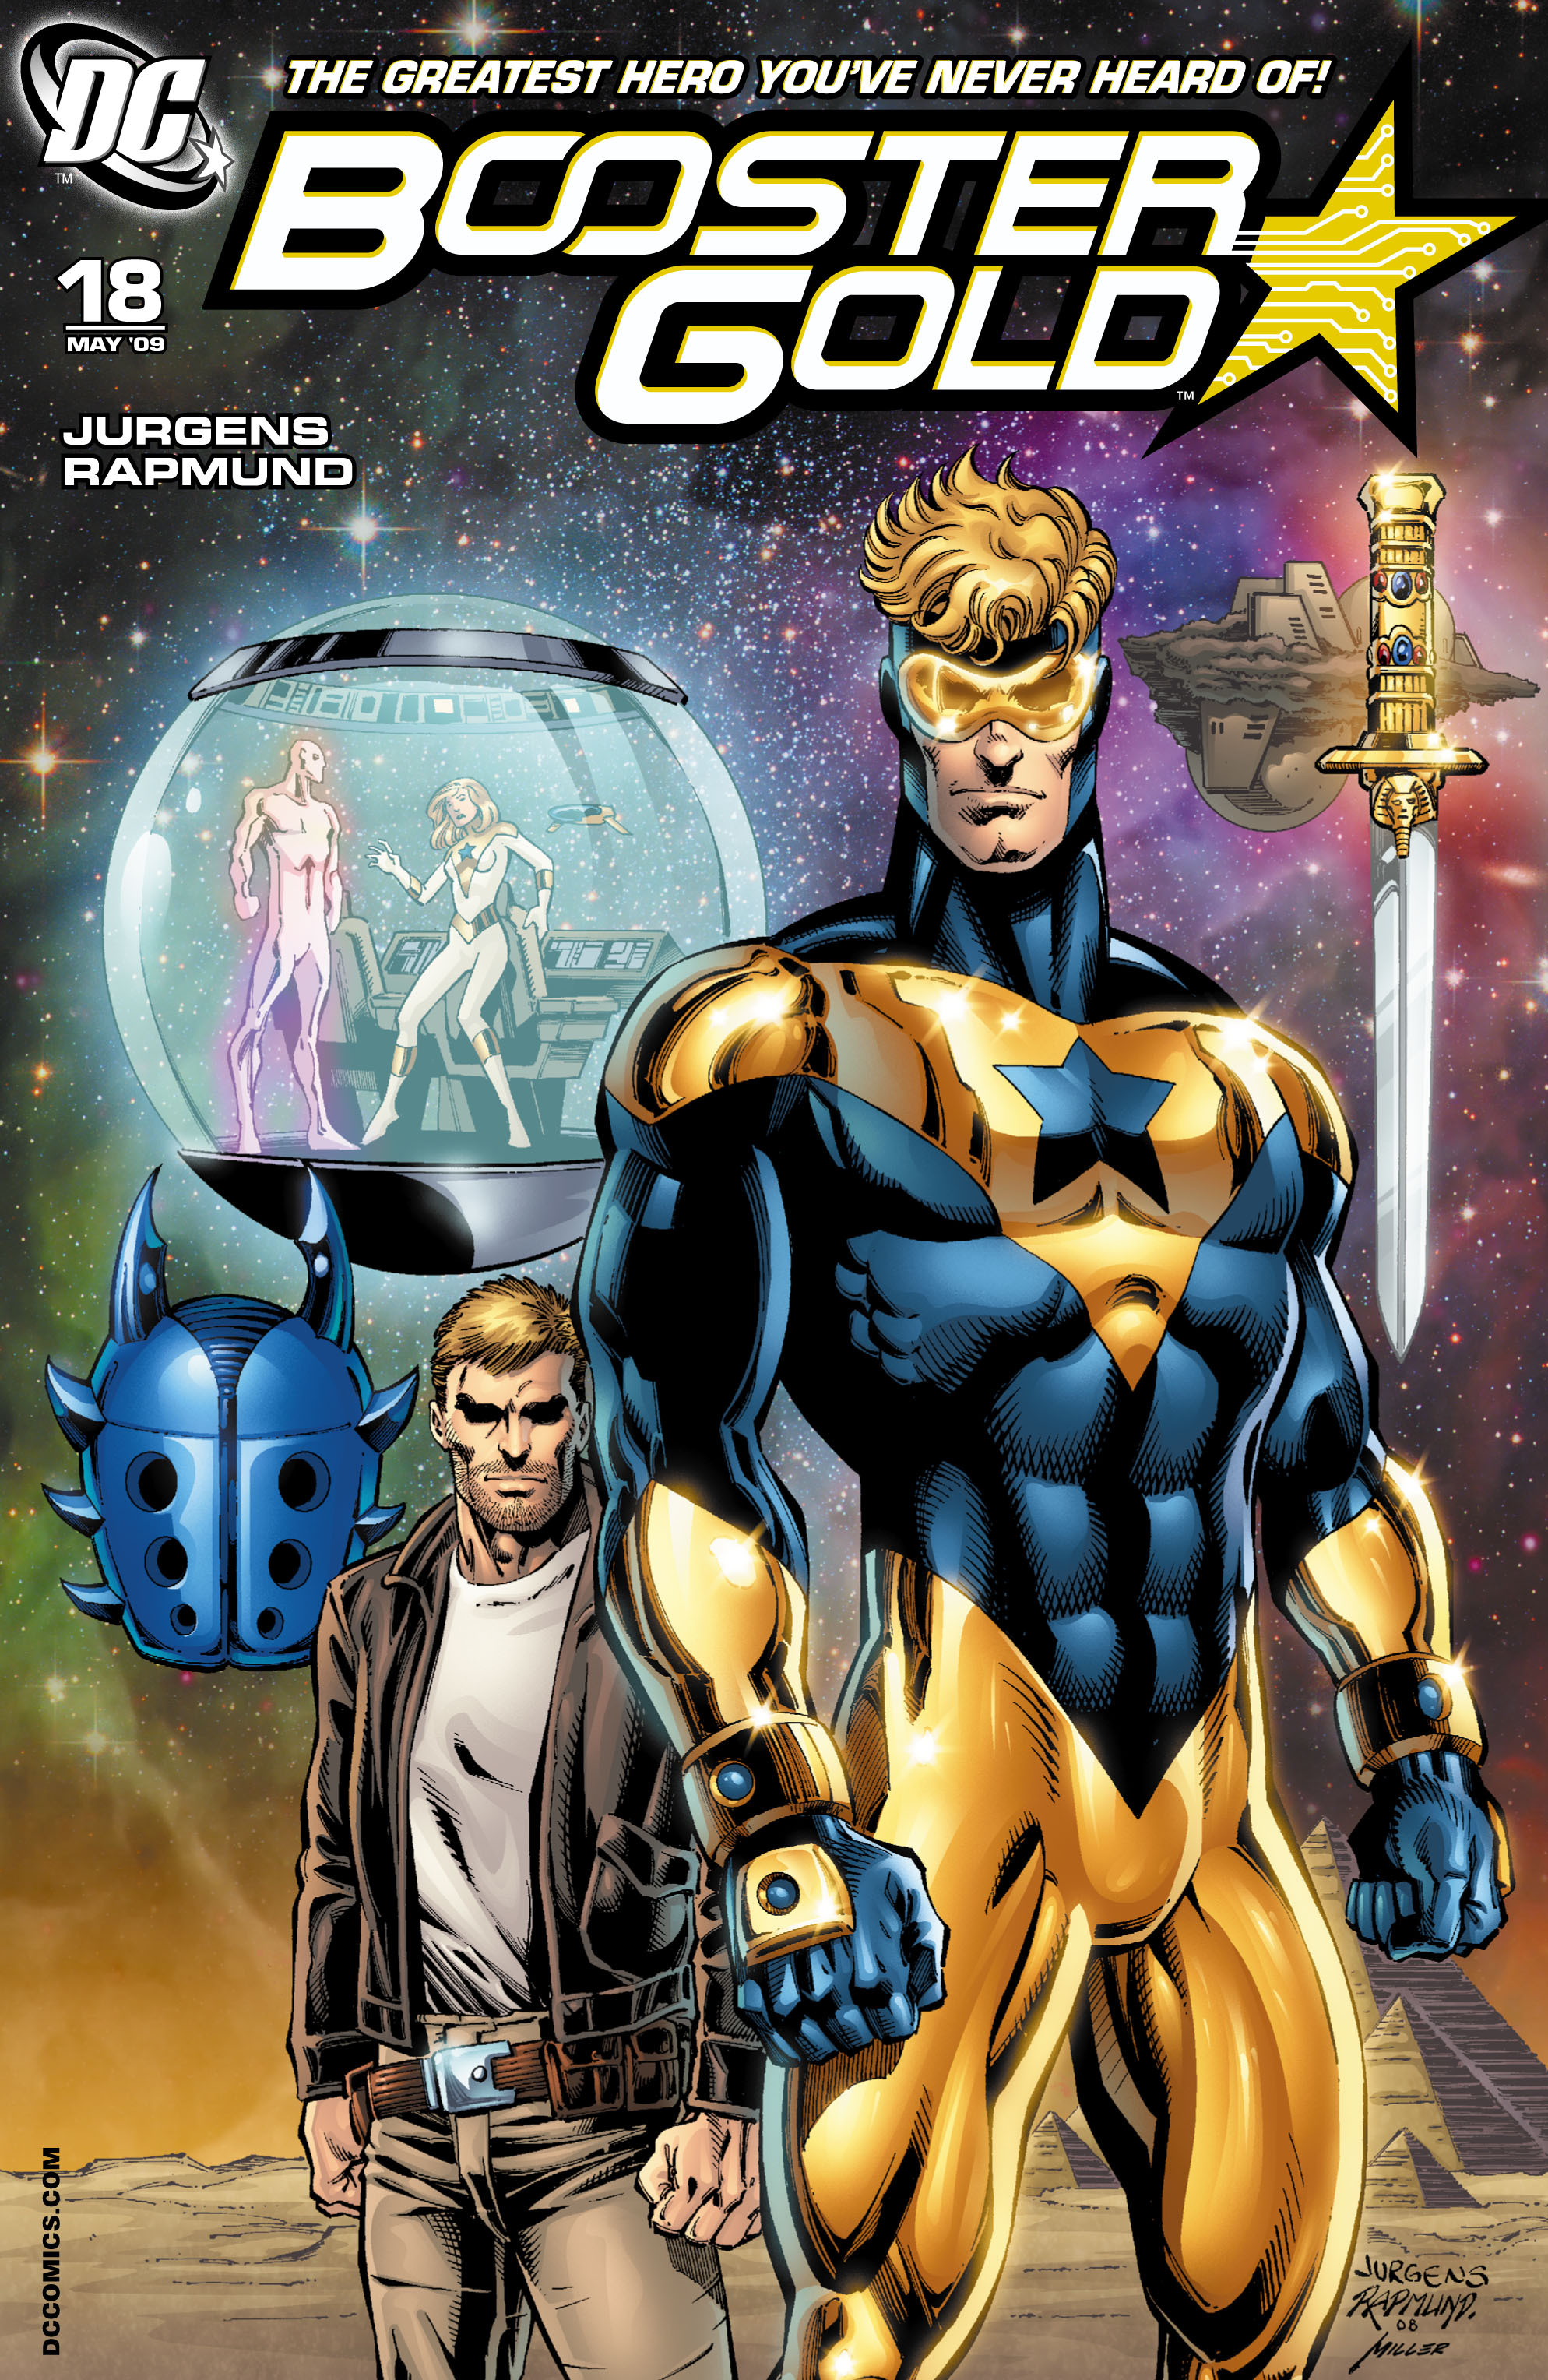 Booster Gold 2007 Issue 18